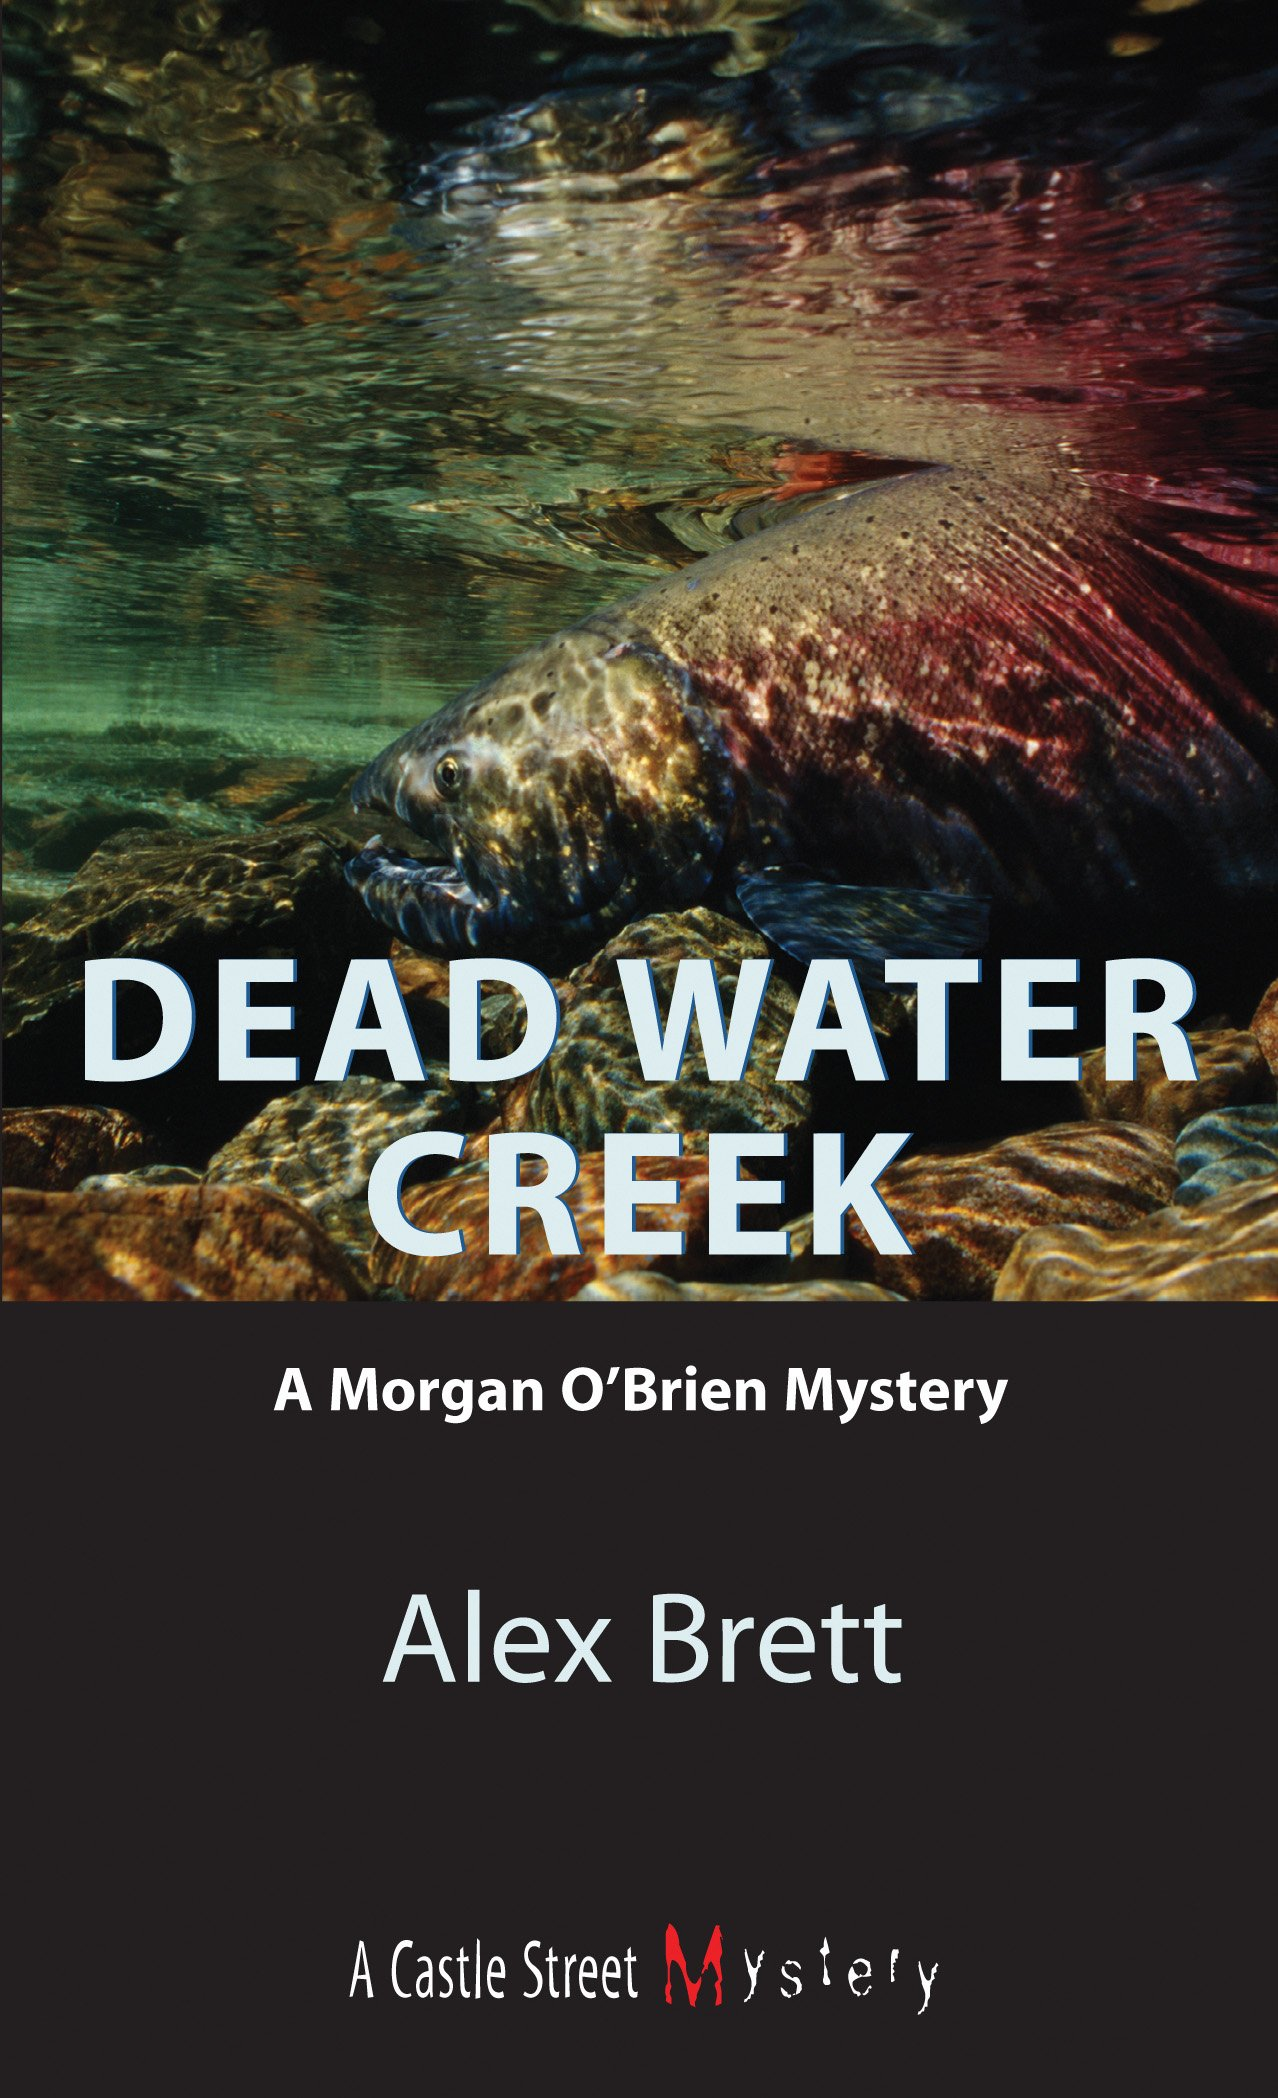 DEAD WATER CREEK COVER HIGH RES